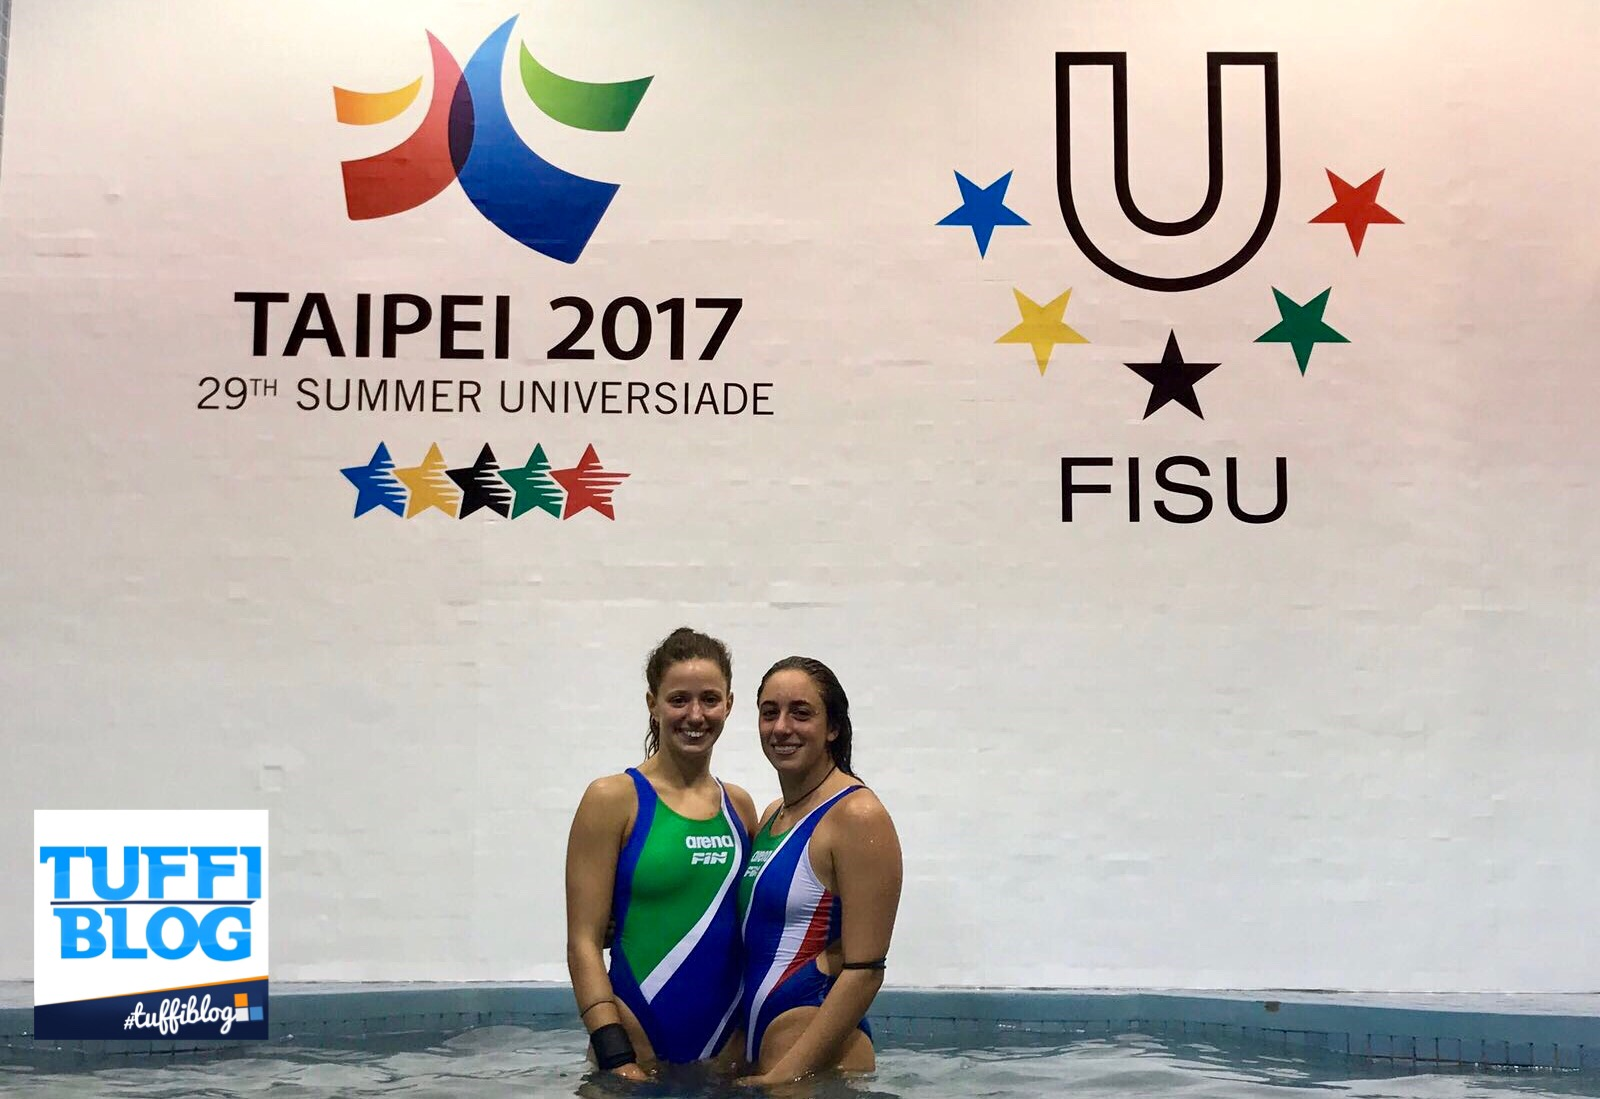 Universiadi 2017: Taipei - Flaminio e Pallotta avanzano in semifinale!